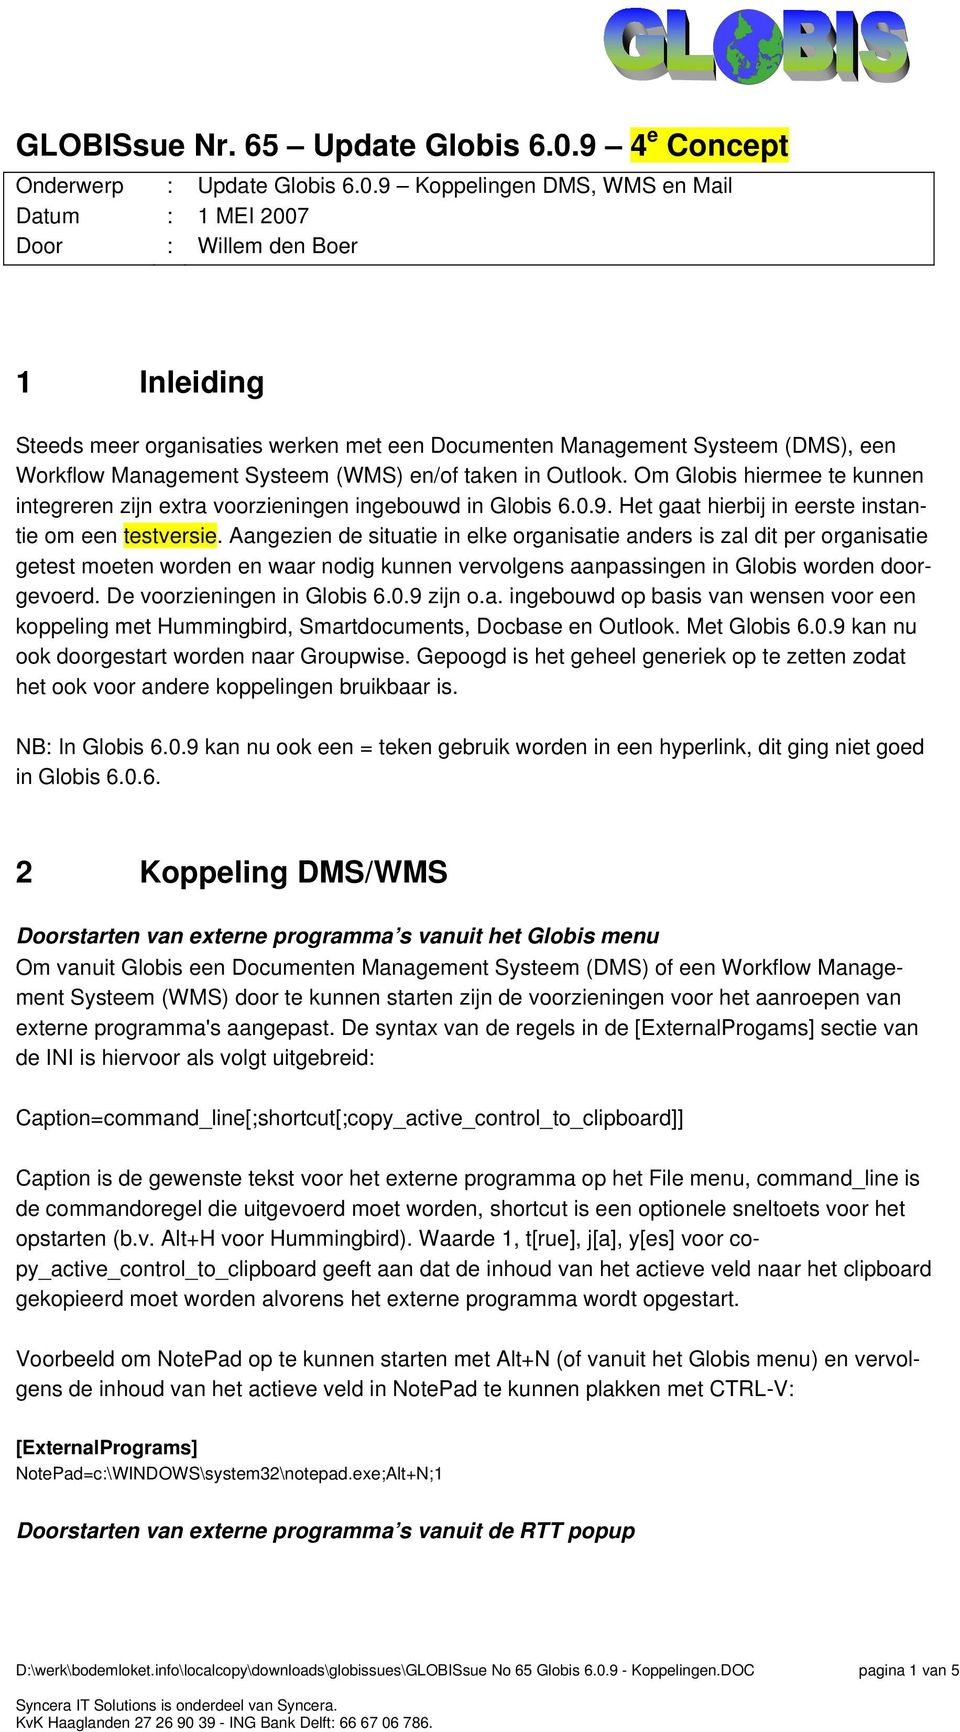 9 Koppelingen DMS, WMS en Mail 1 MEI 2007 Willem den Boer 1 Inleiding Steeds meer organisaties werken met een Documenten Management Systeem (DMS), een Workflow Management Systeem (WMS) en/of taken in